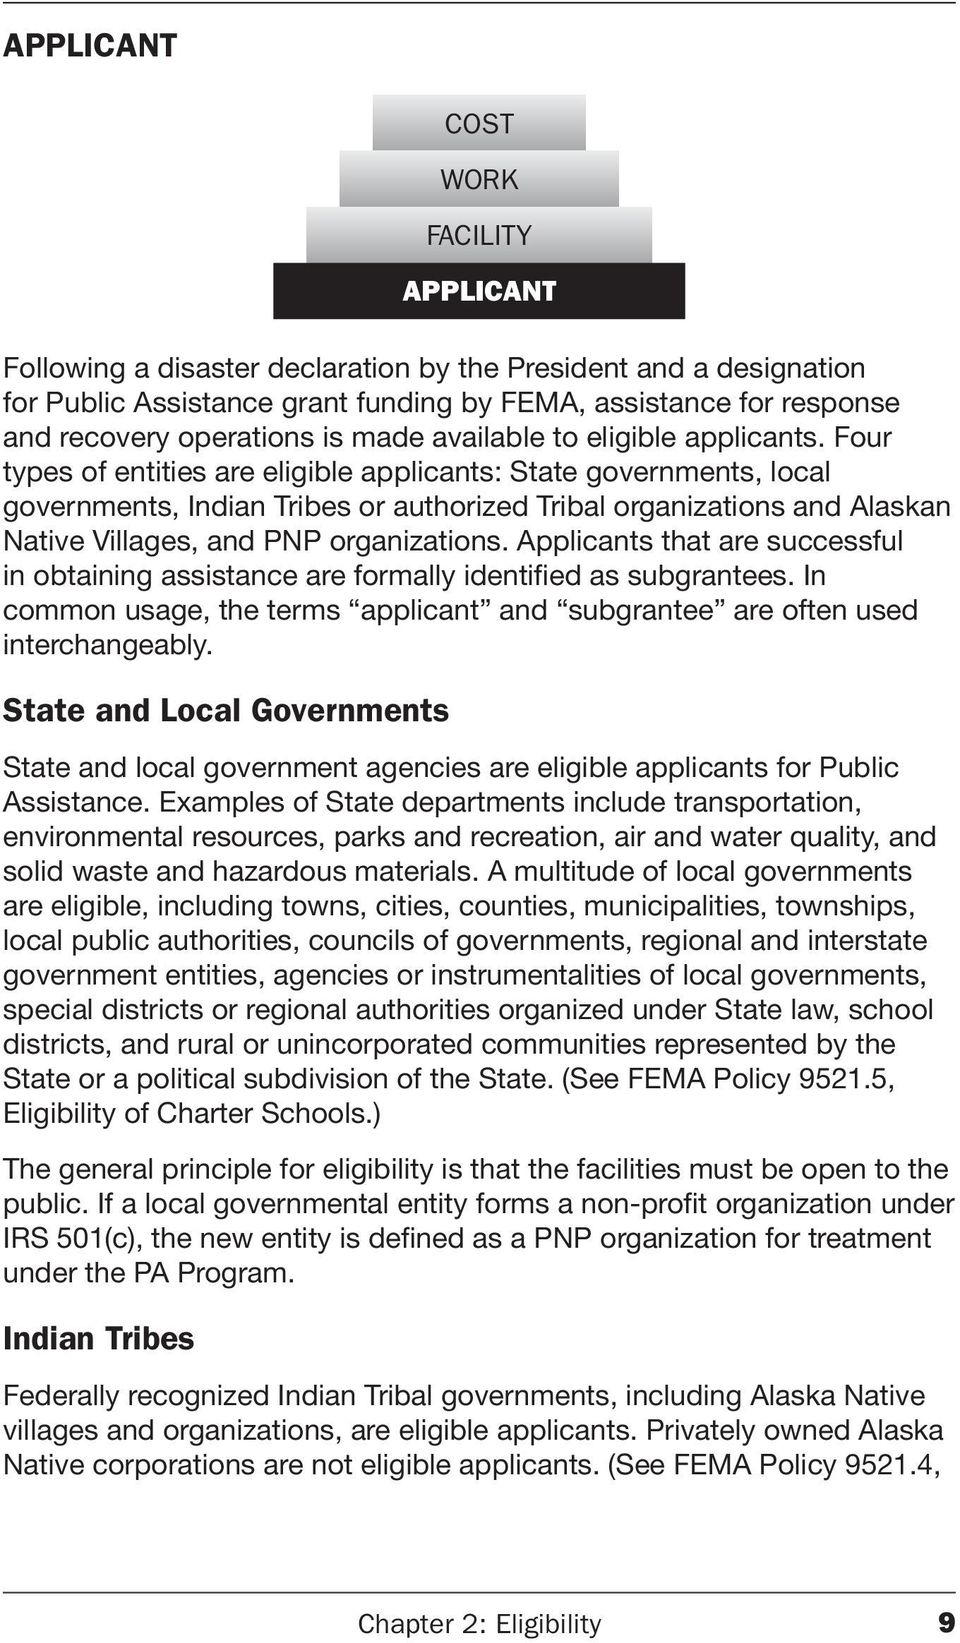 Four types of entities are eligible applicants: State governments, local governments, Indian Tribes or authorized Tribal organizations and Alaskan Native Villages, and PNP organizations.